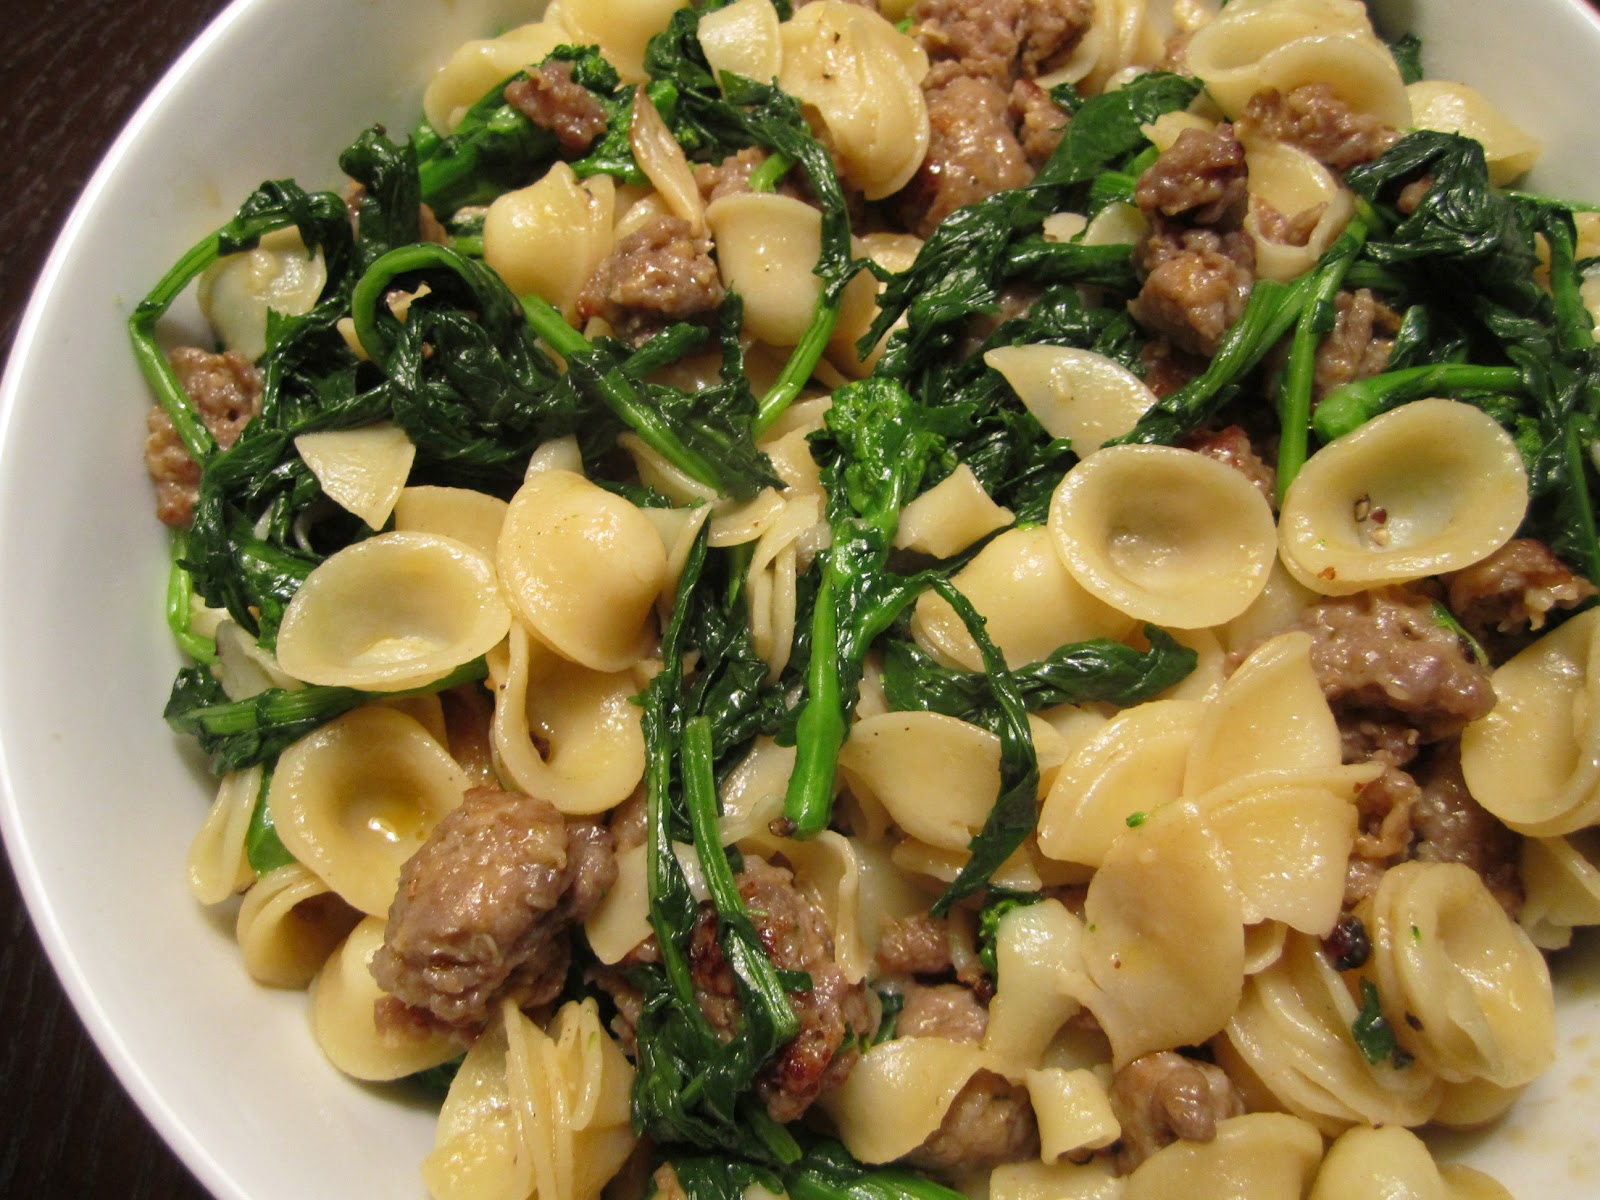 broccoli rabe pasta with spicy italian sausage zucchini noodles pasta ...